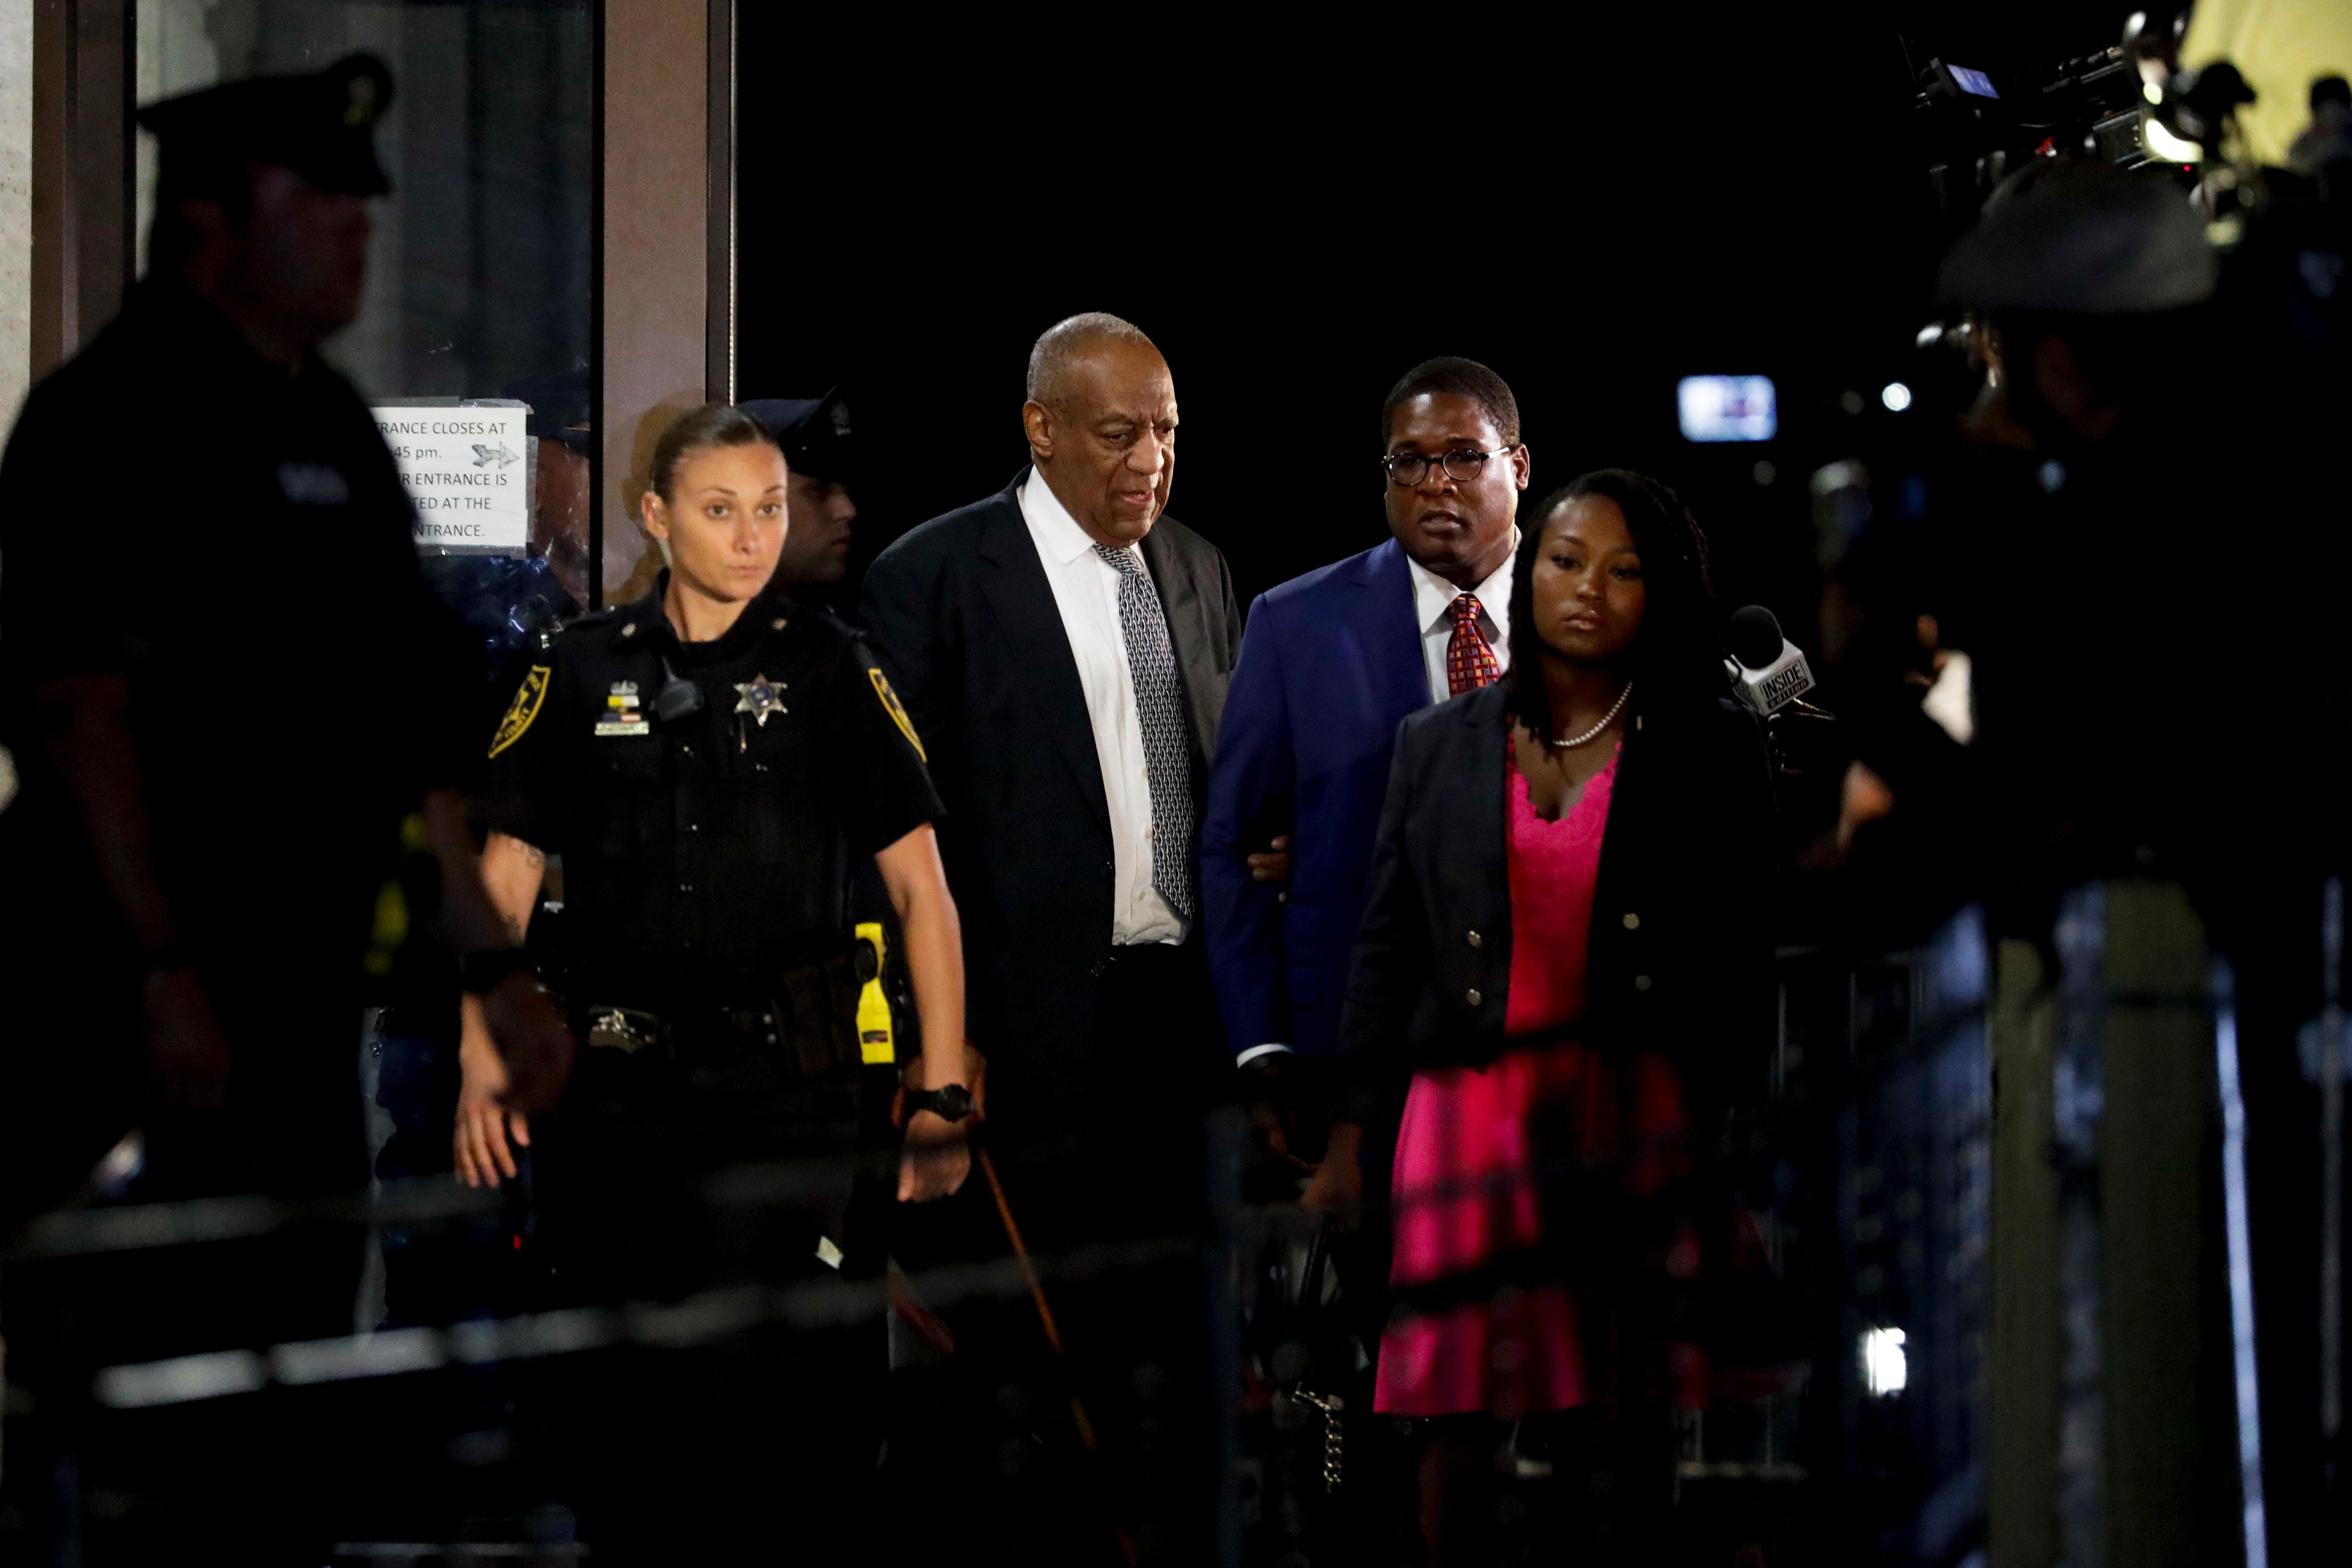 Bill Cosby leaves the Montgomery County Courthouse during his sexual assault trial, Friday, June 16, 2017, in Norristown, Pa. (AP Photo/Matt Slocum)